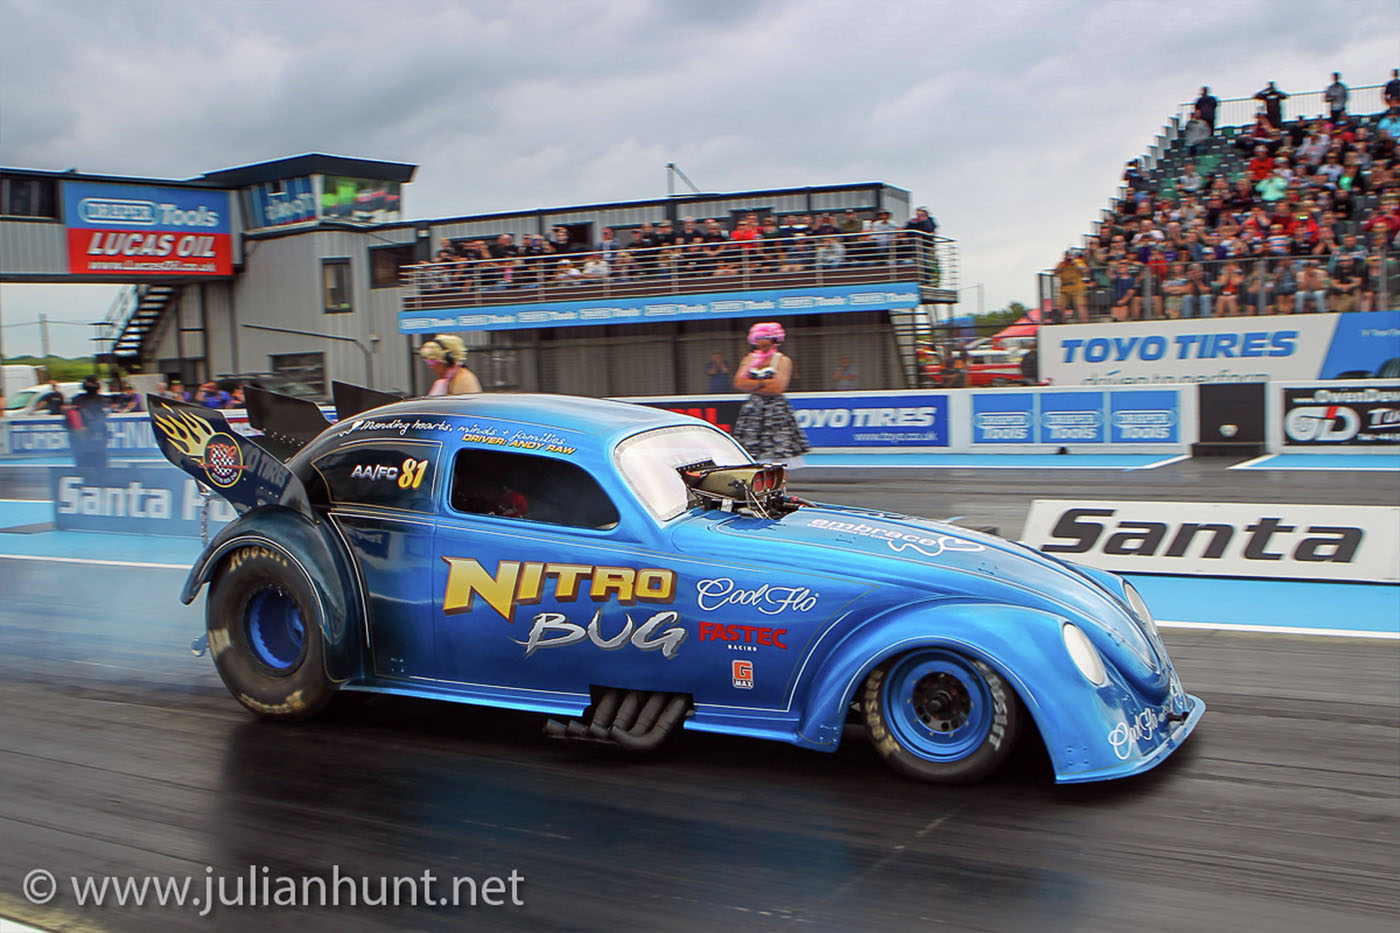 Cool Flo sponsored Nitro Bug VW funny car